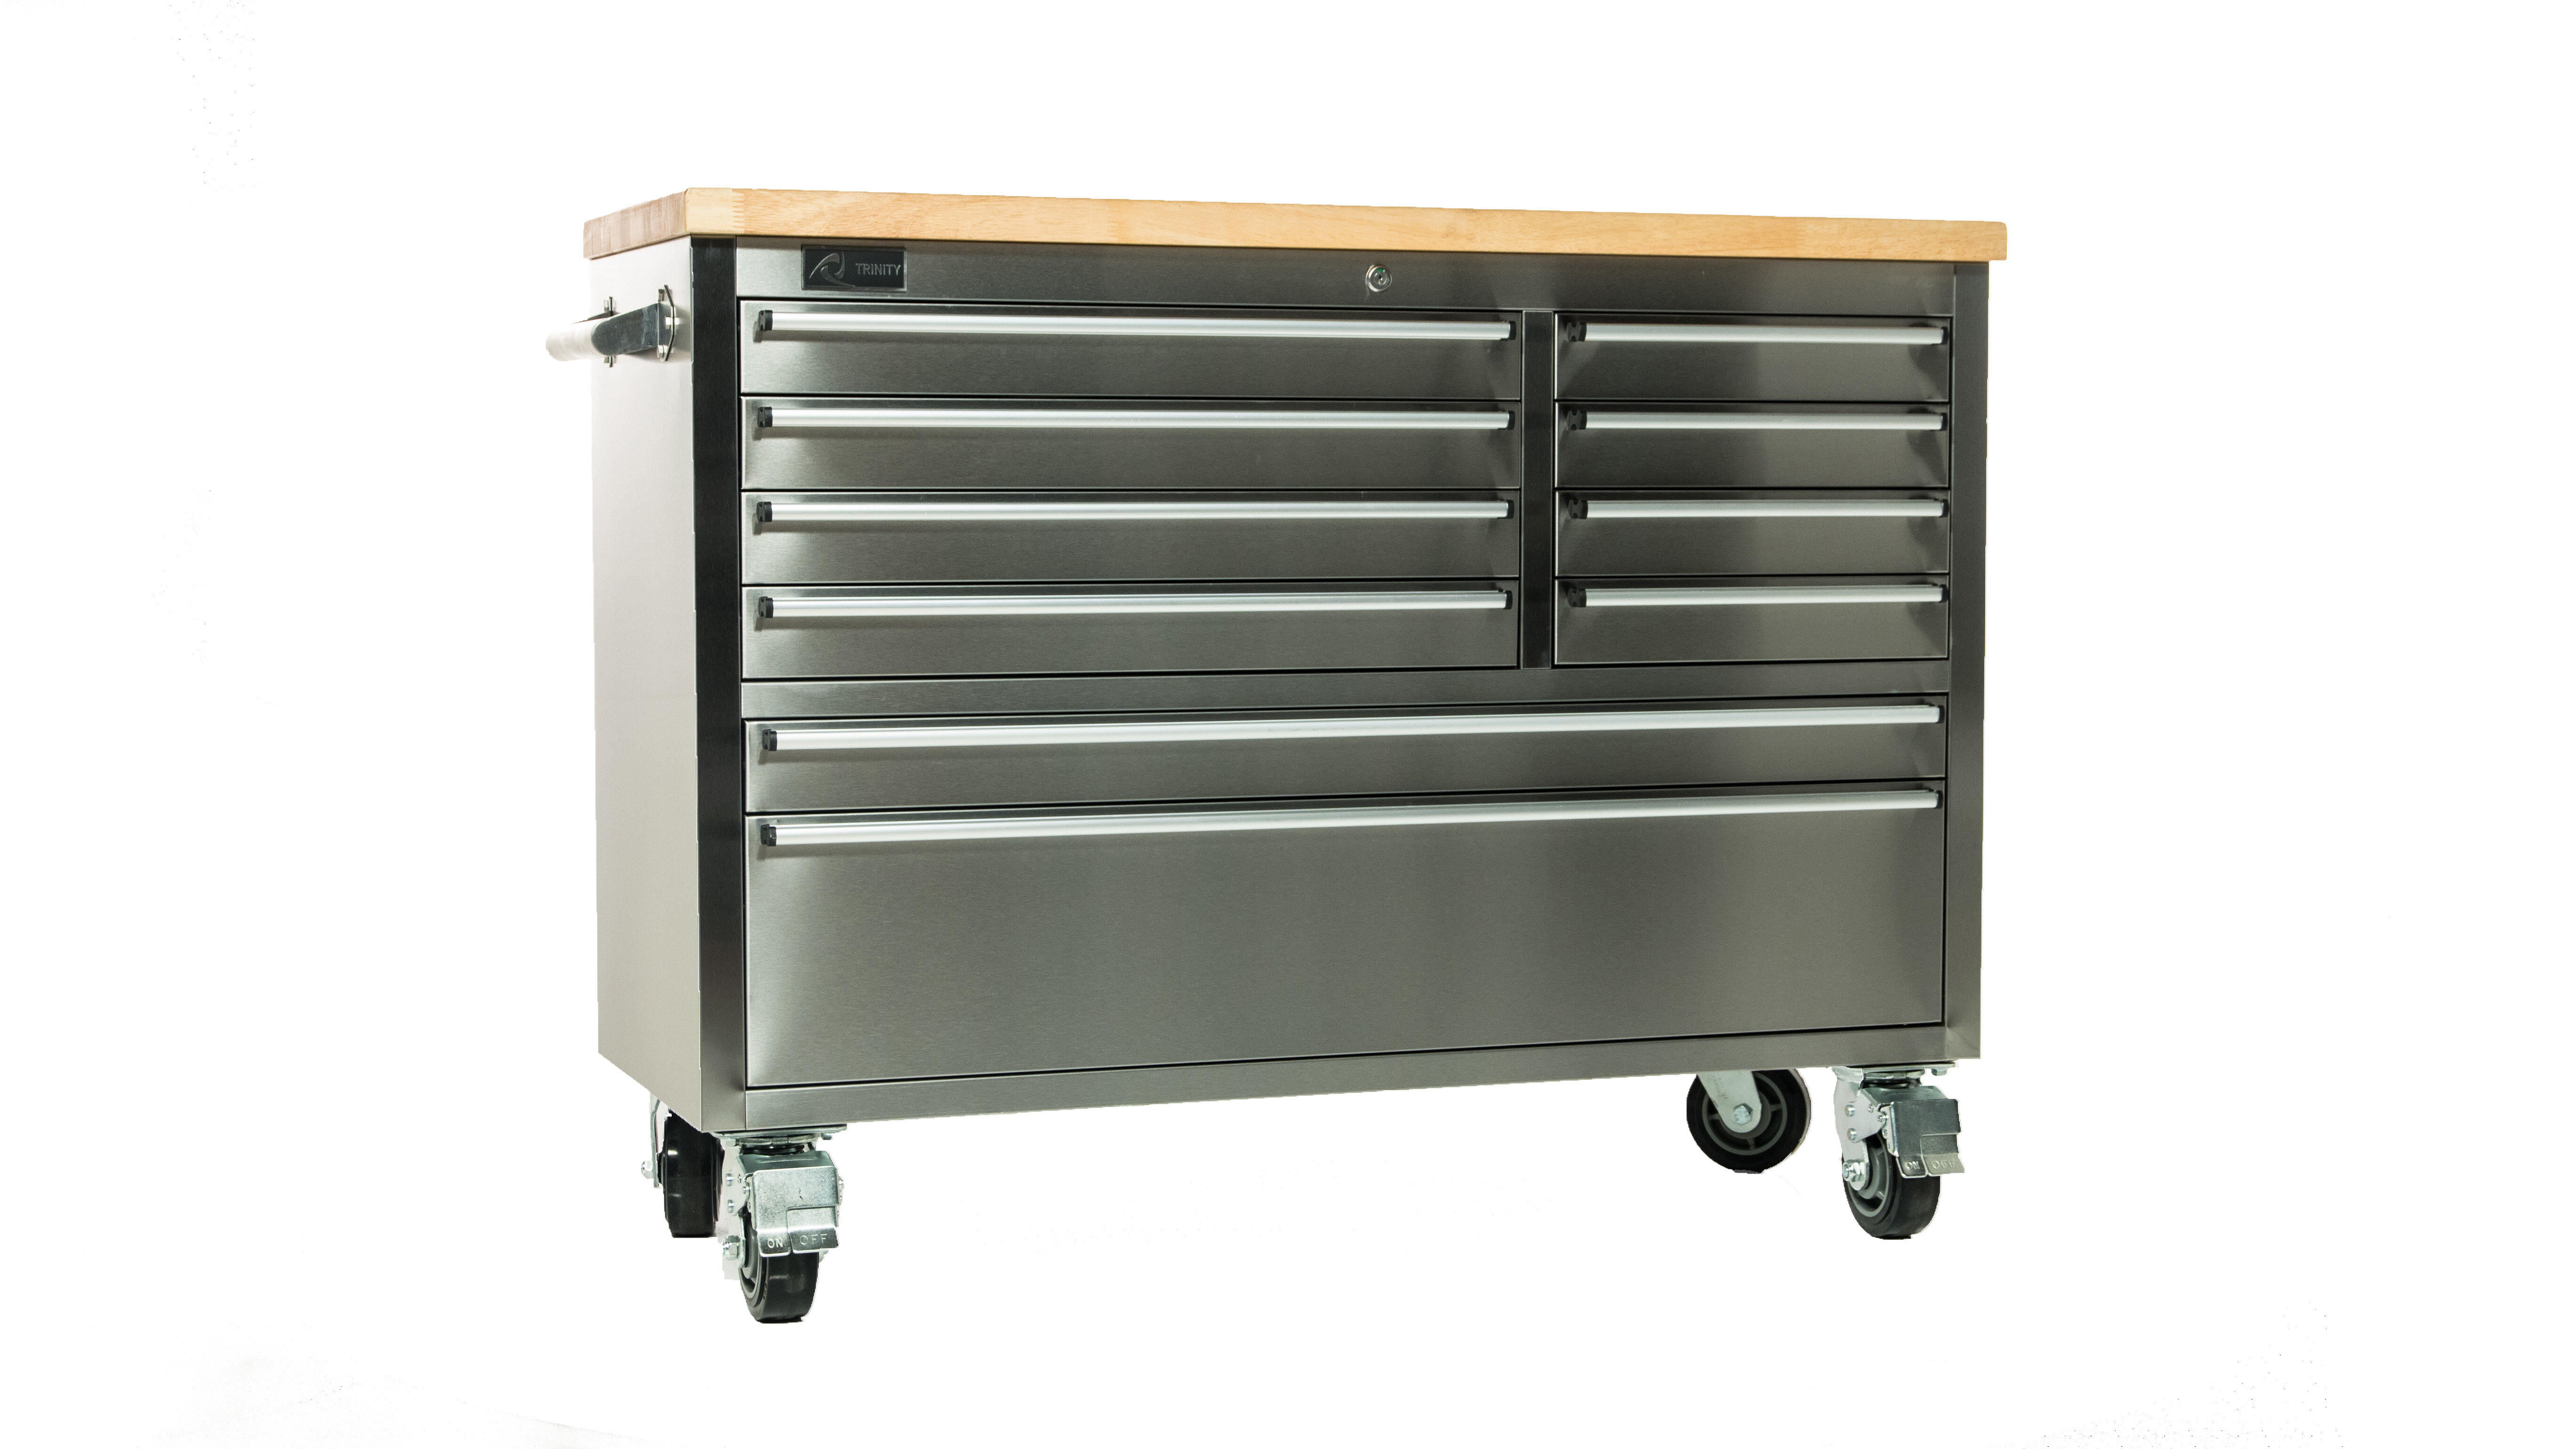 peaceful cabinet that kitchen slide of industrial drawer slides drawers clothes lovely cabinets for